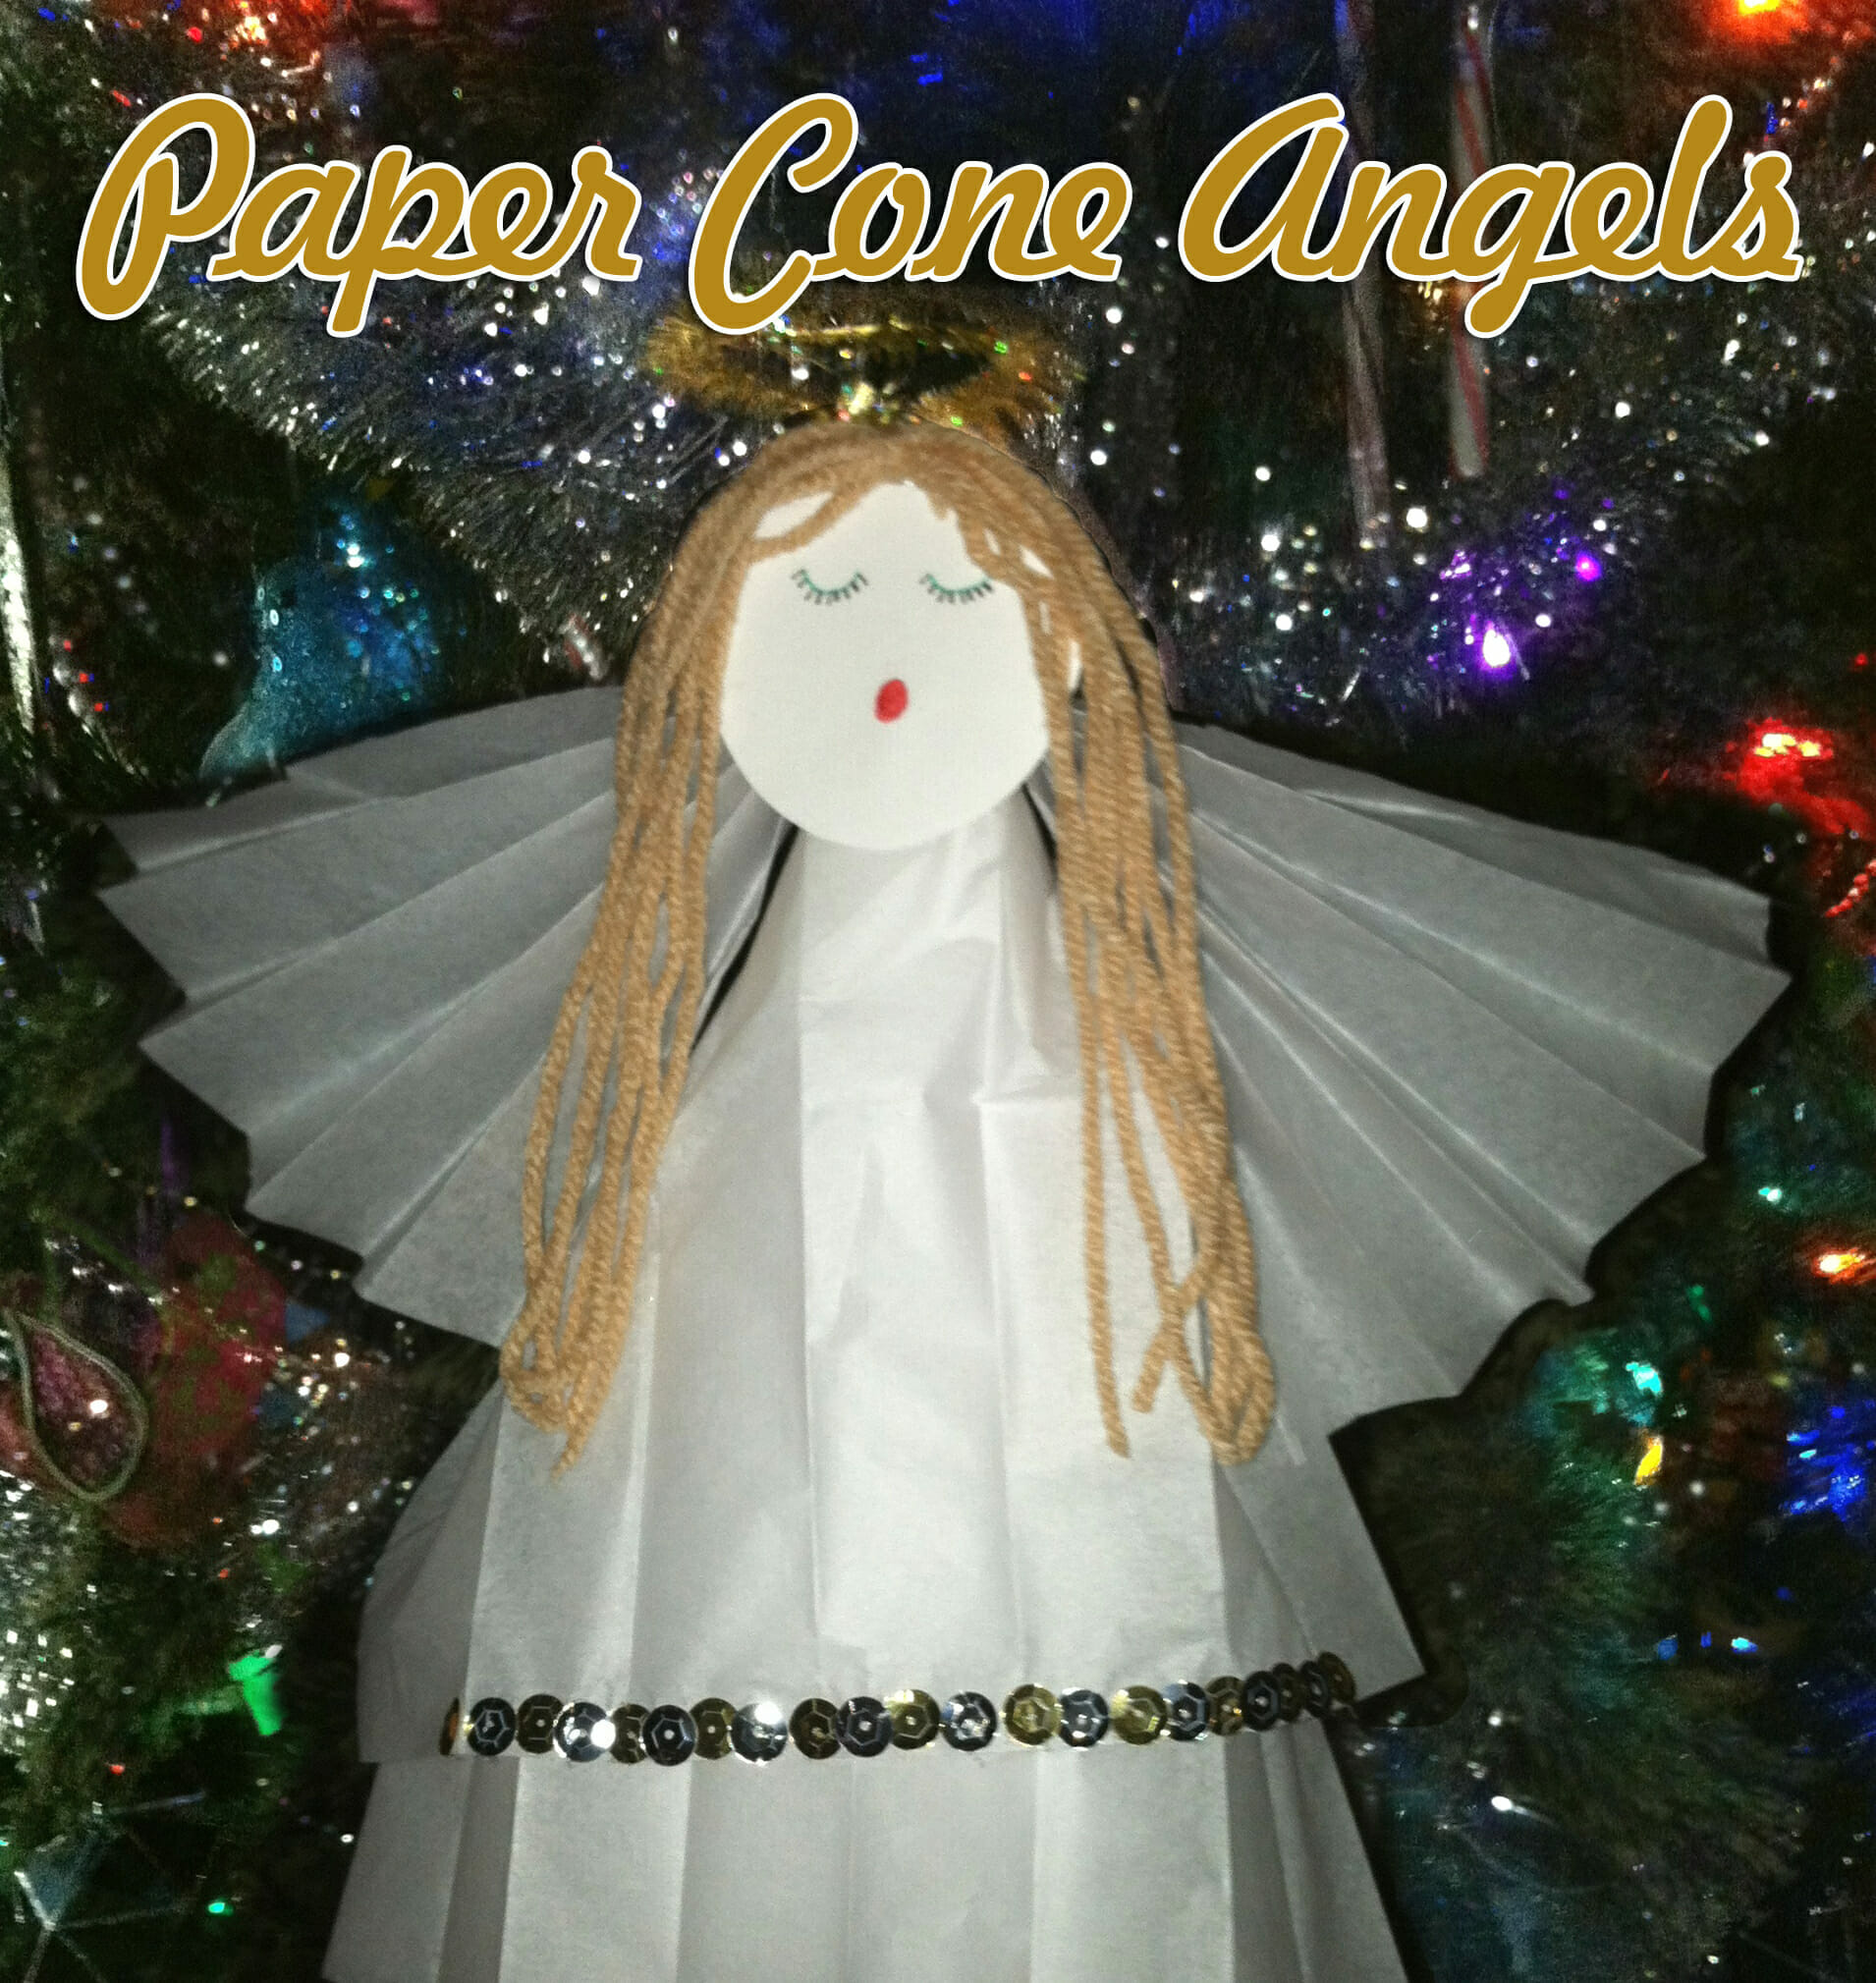 Paper Cone Angels Christmas Craft